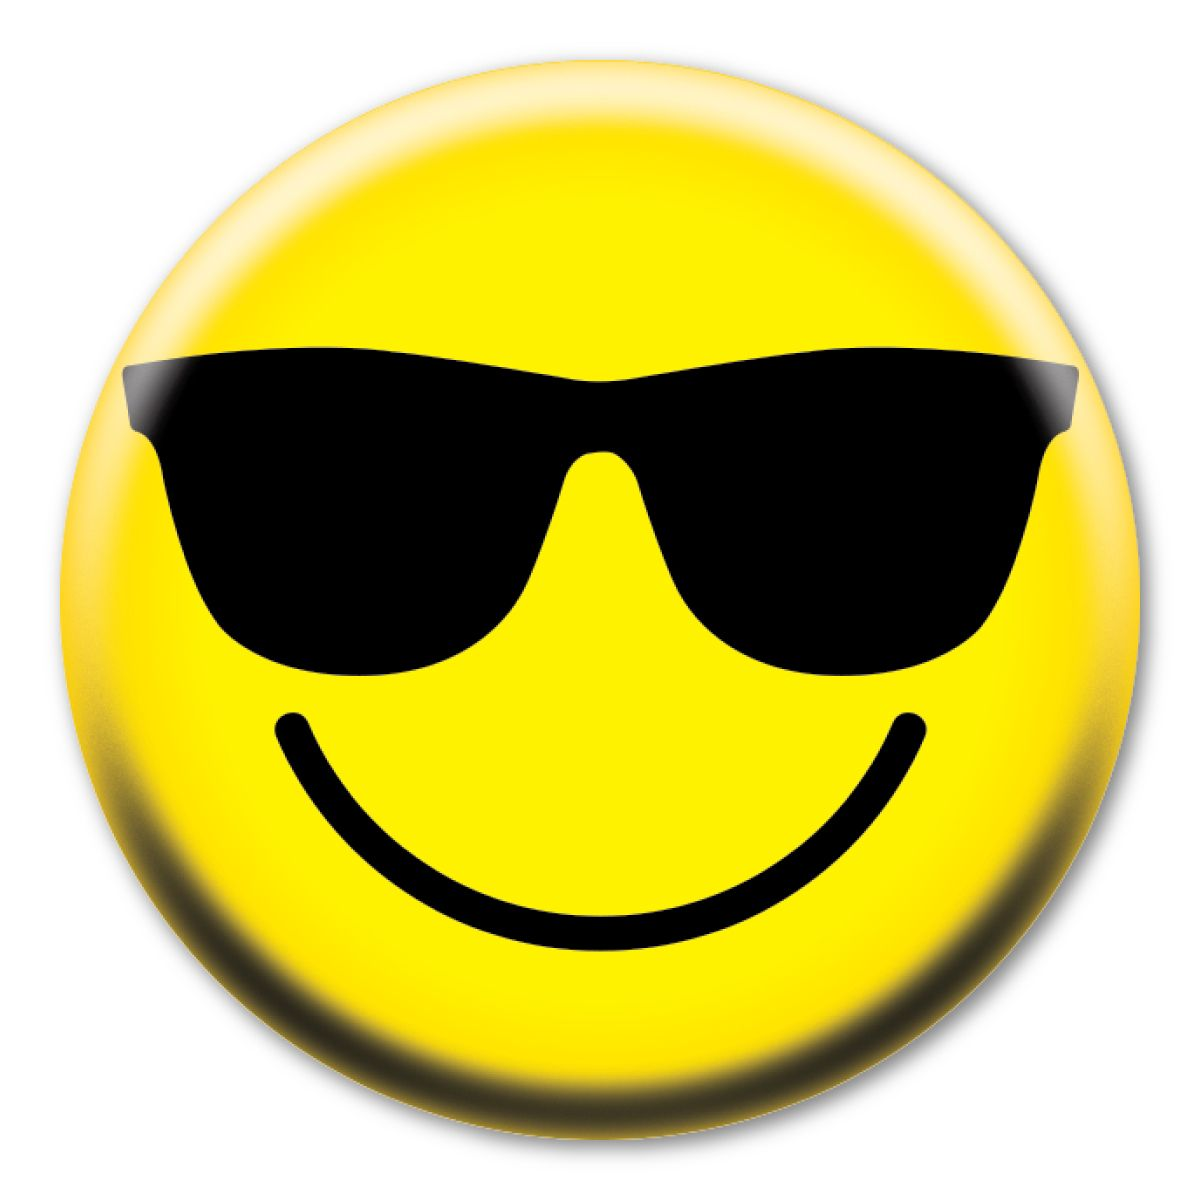 Magnet America Smiley Face With Shades Circle Button 2 49 Https Magnetamerica Com Smiley Face With Whatsapp Funny Pictures Funny Profile Pictures Smiley